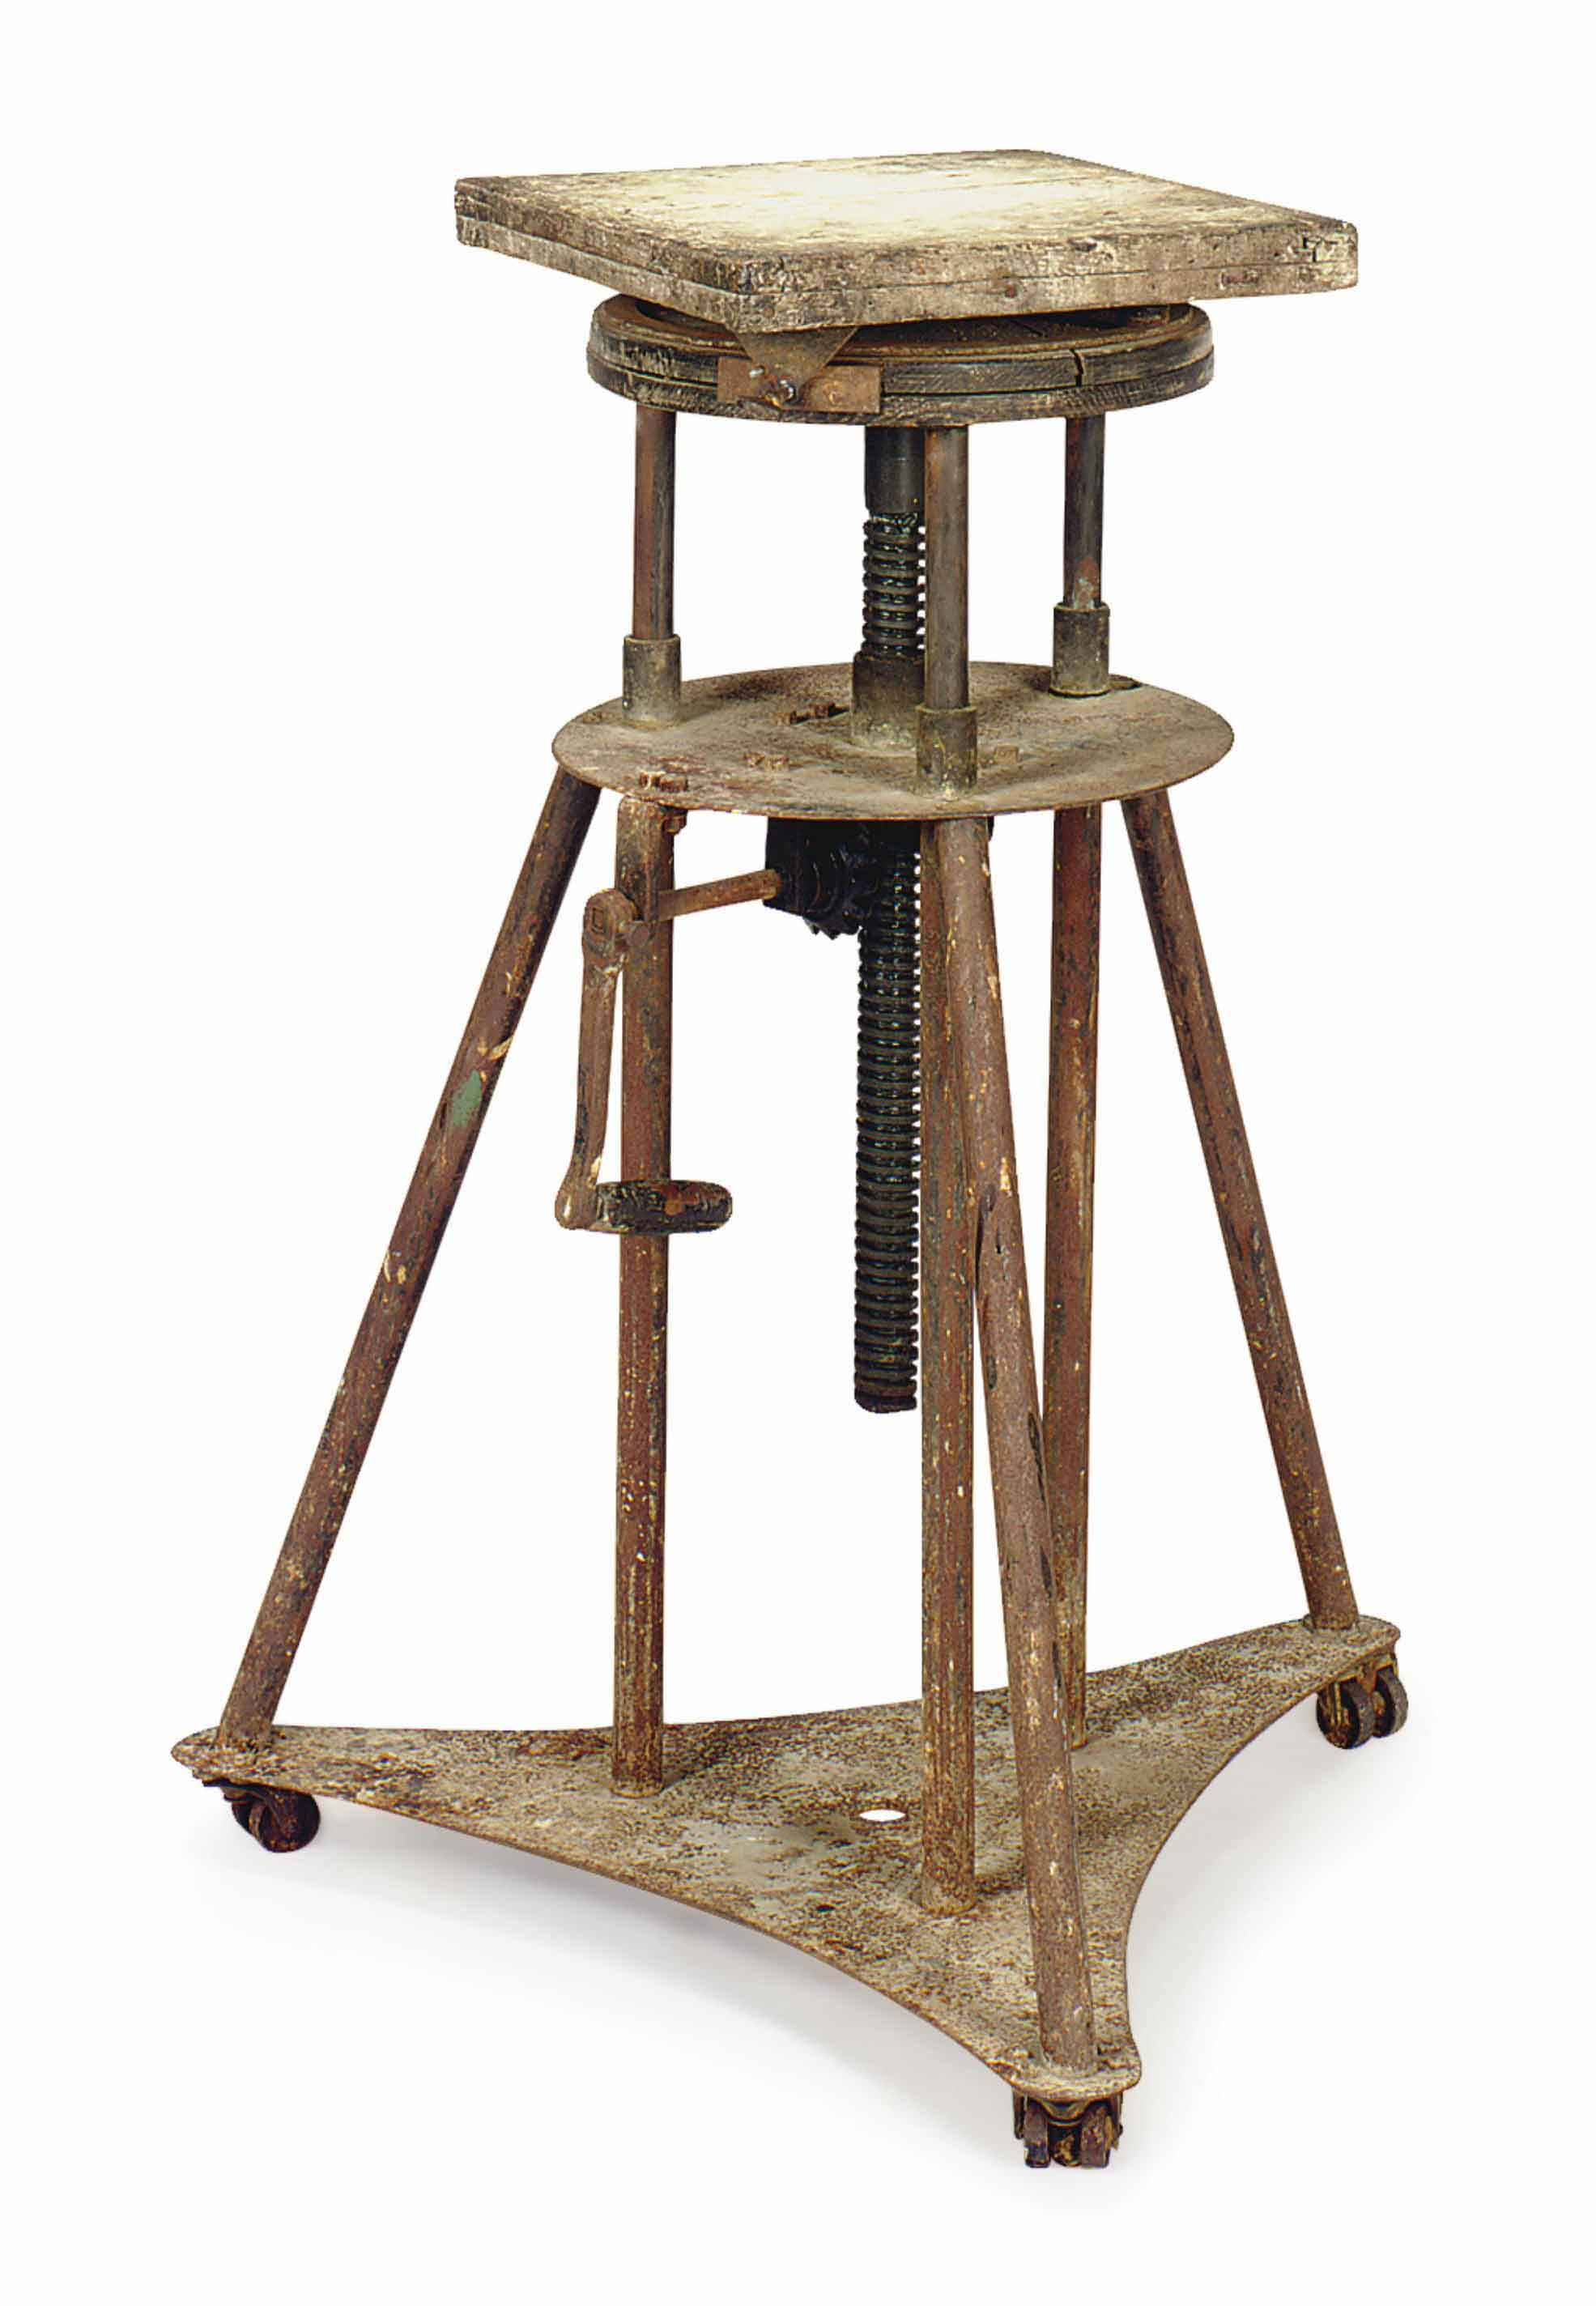 A PAINTED OAK AND METAL ADJUSTABLE SCULPTURE STAND,